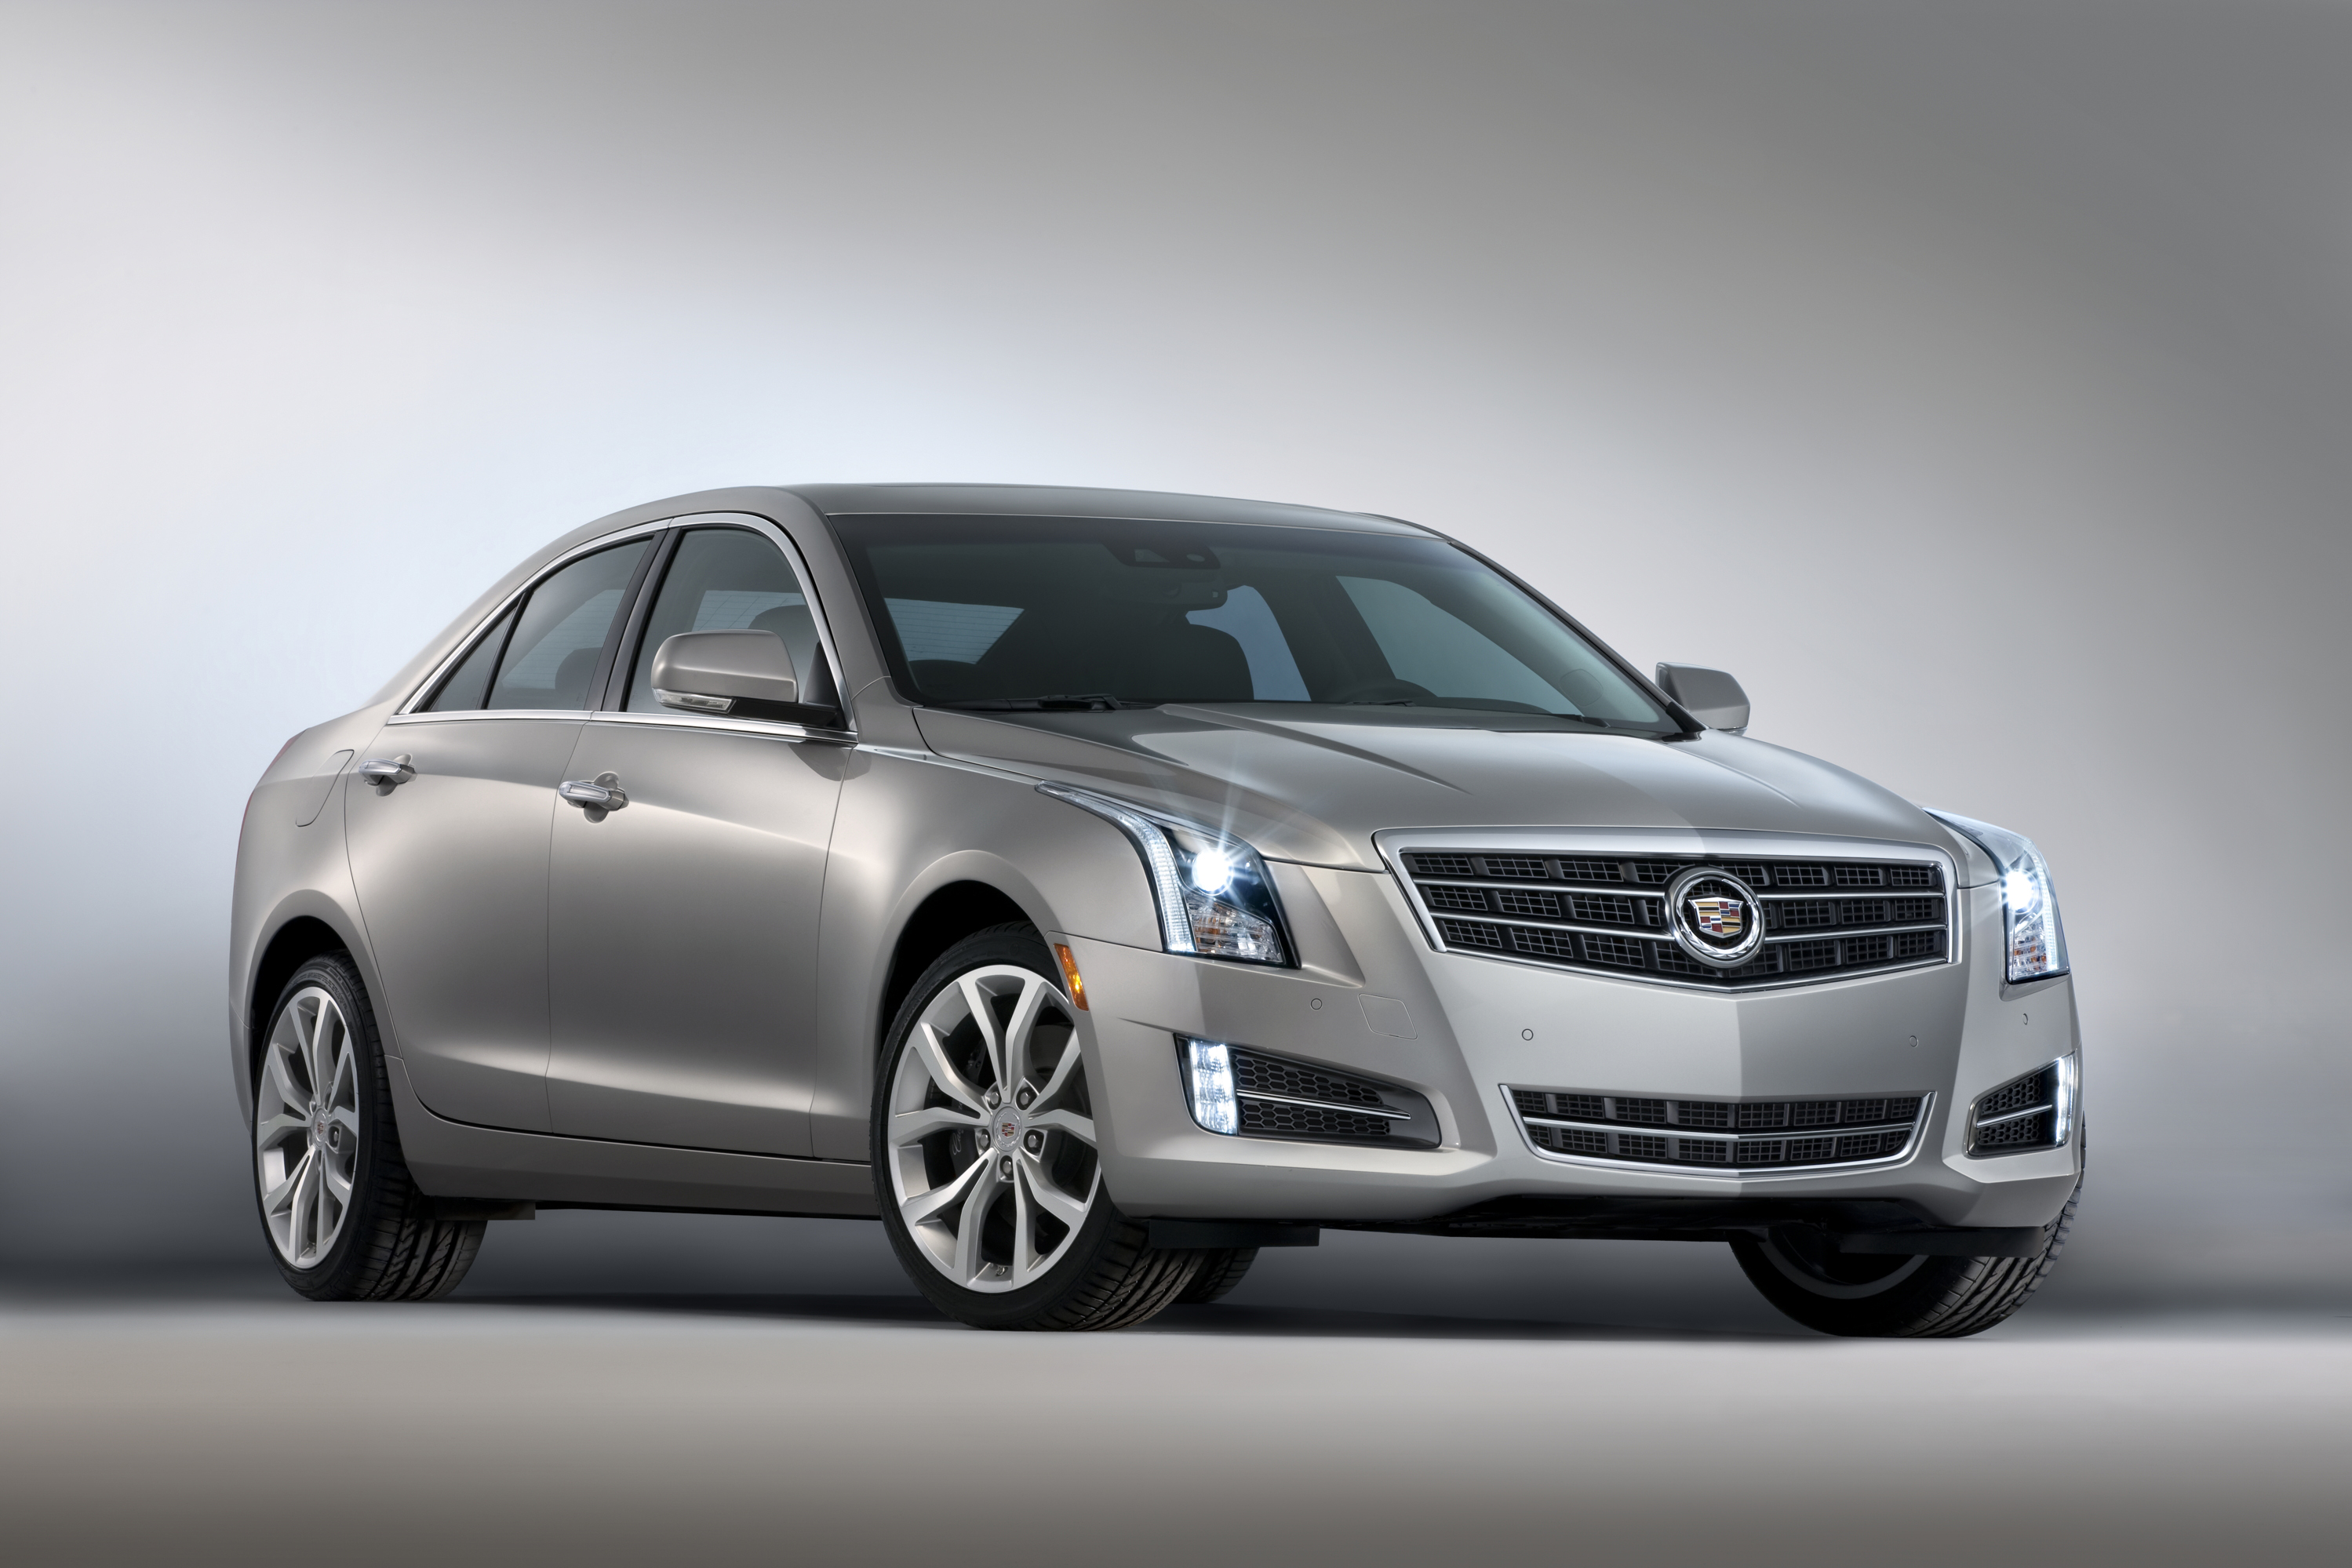 ca you sedan know cadillac things ats autotrader newsfeatures coupe need to of